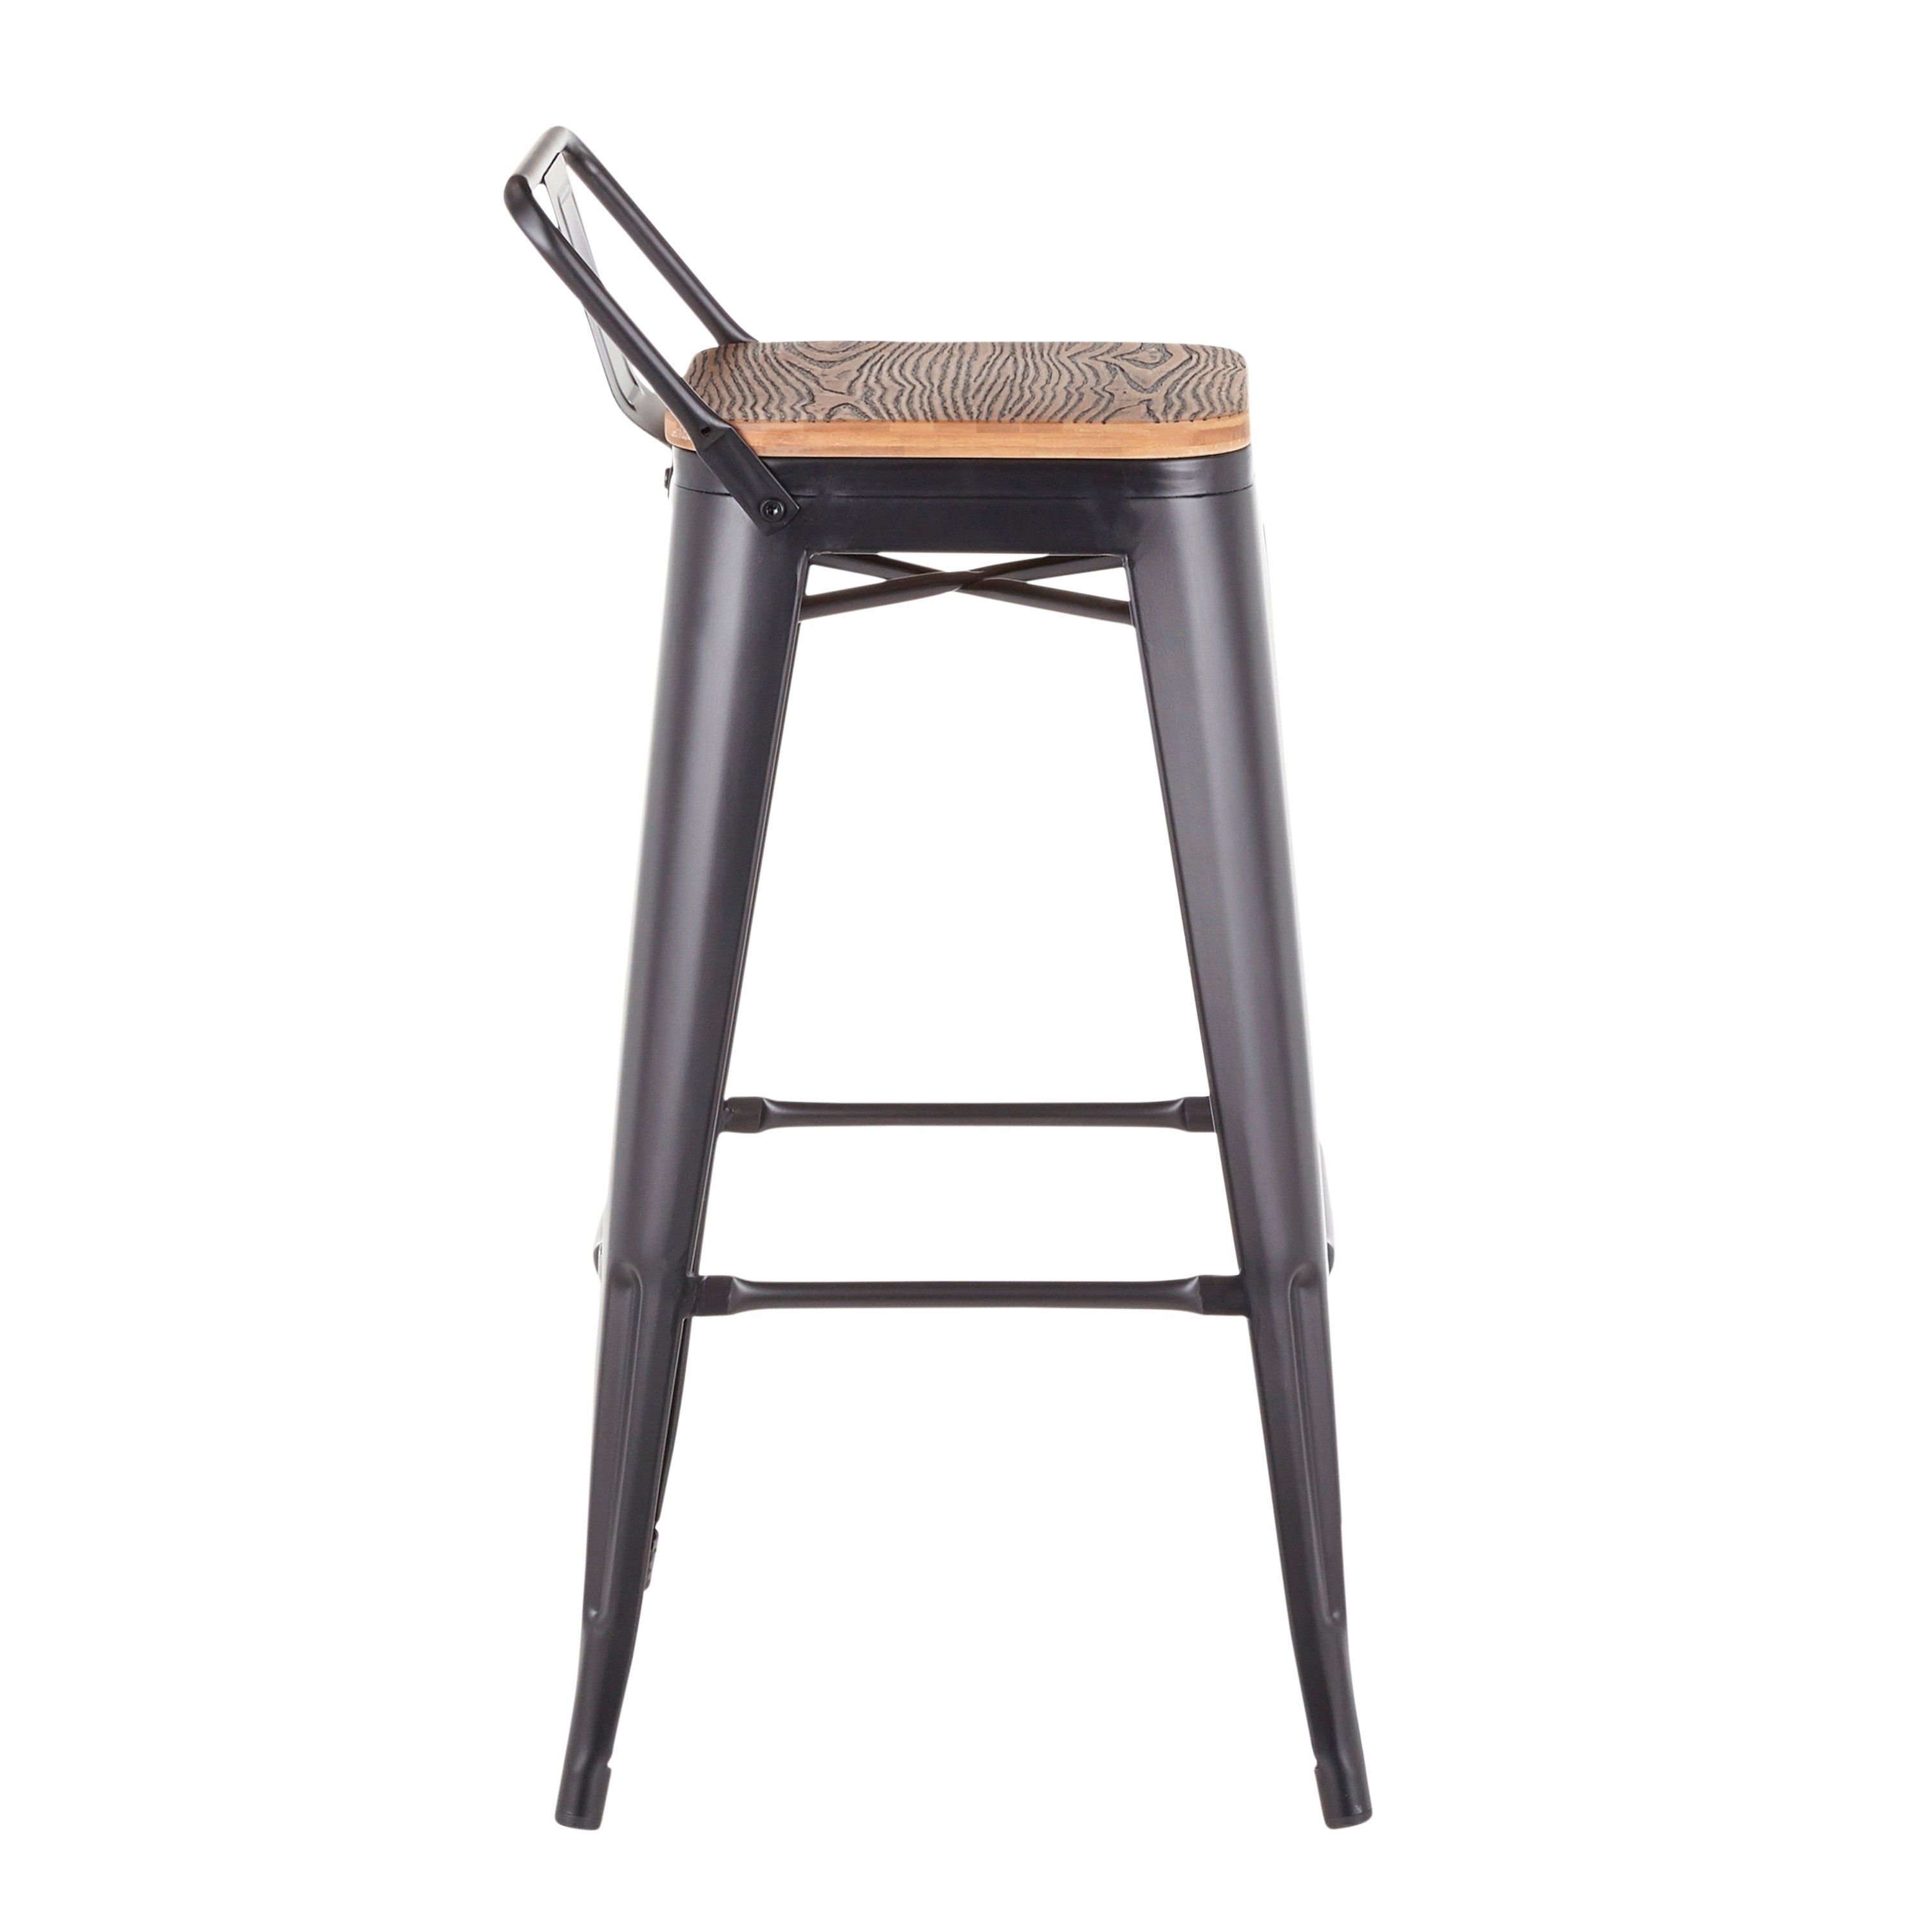 Pleasing Industrial Black Metal 30 Inch Bar Stool Set Of 2 Oregon Pabps2019 Chair Design Images Pabps2019Com